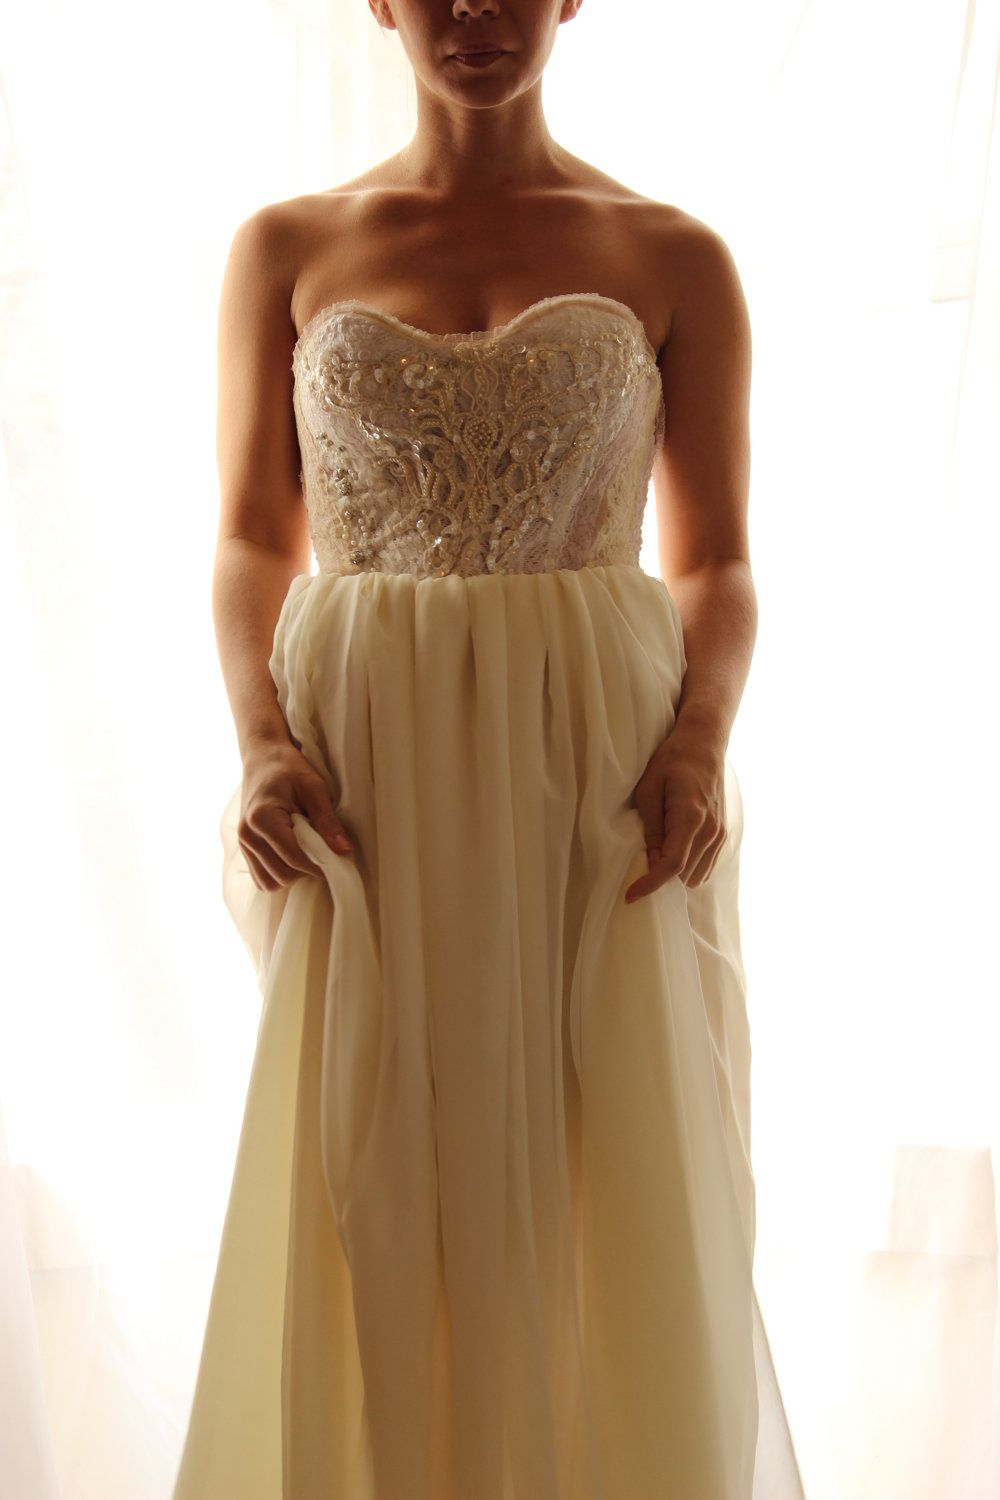 If I ever get married, I hope this designer is still making this dress.